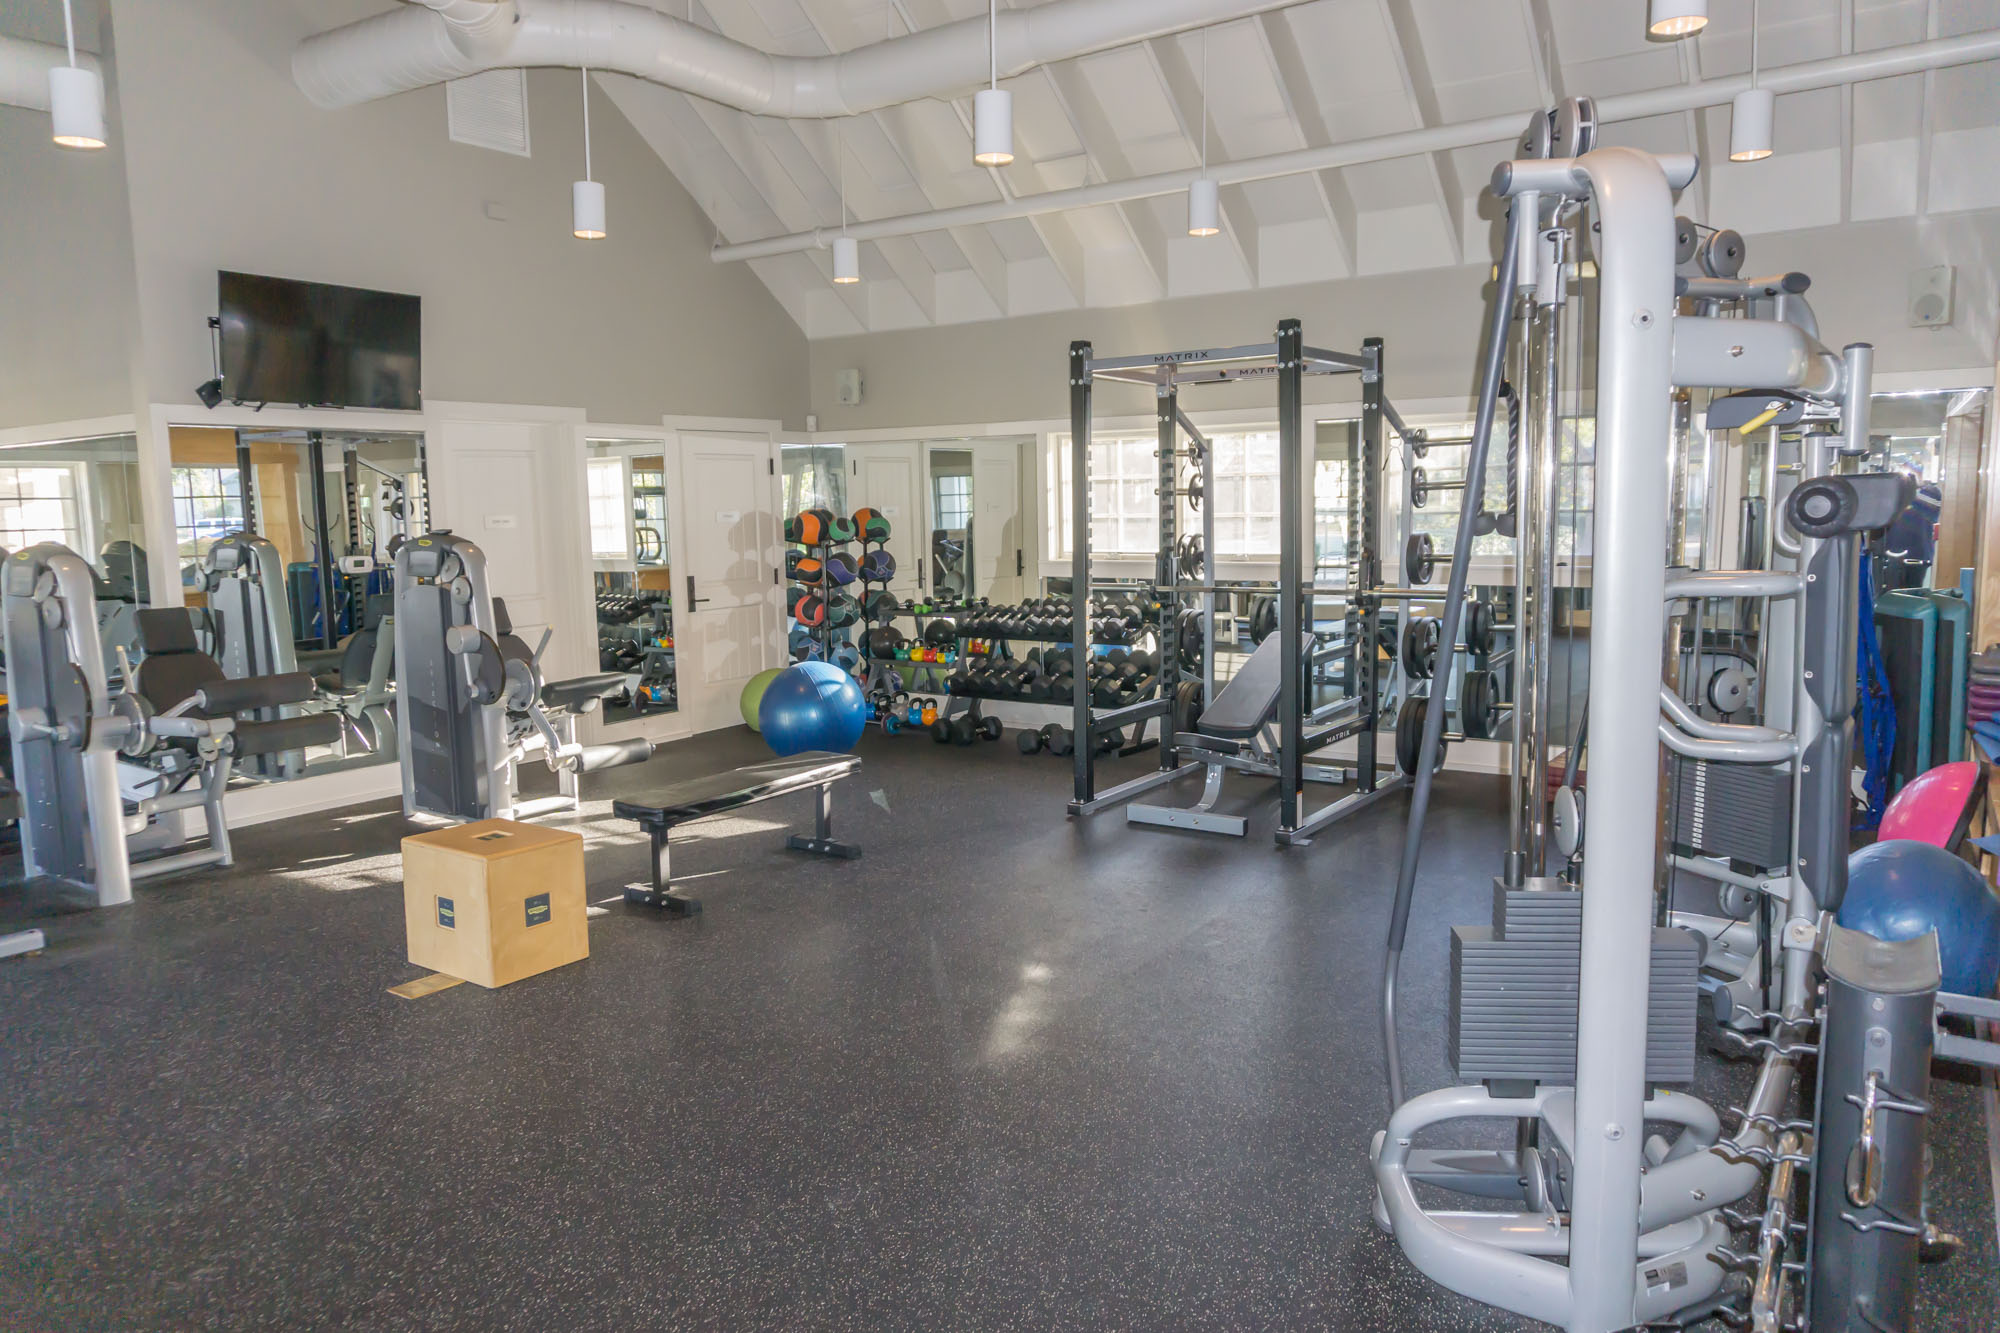 WaterSound Origins Fitness Center